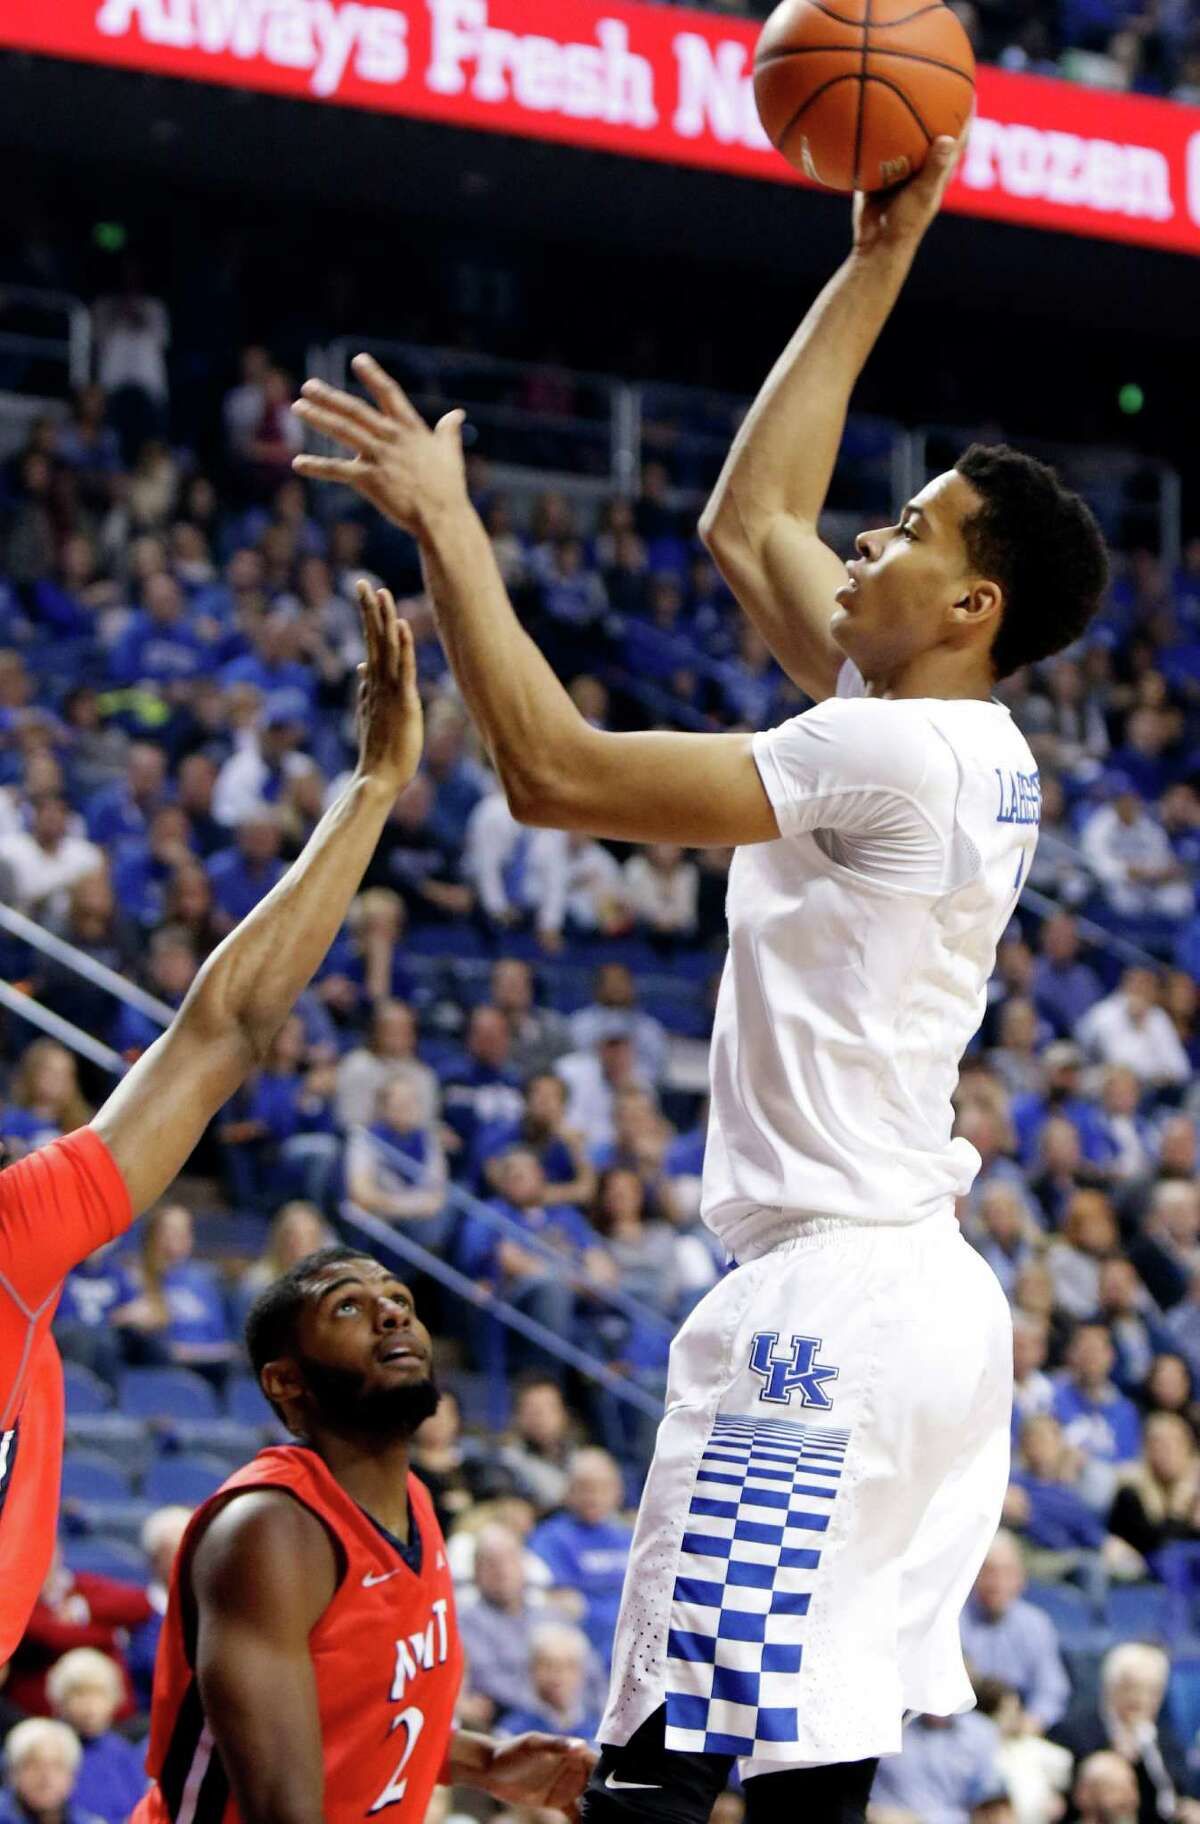 Kentucky's Skal Labissiere, right, shoots over NJIT's Terrence Smith, partially in frame at left, and Tim Coleman (2) during the first half of an NCAA college basketball game Saturday, Nov. 14, 2015, in Lexington, Ky. (AP Photo/James Crisp) ORG XMIT: KYJC102